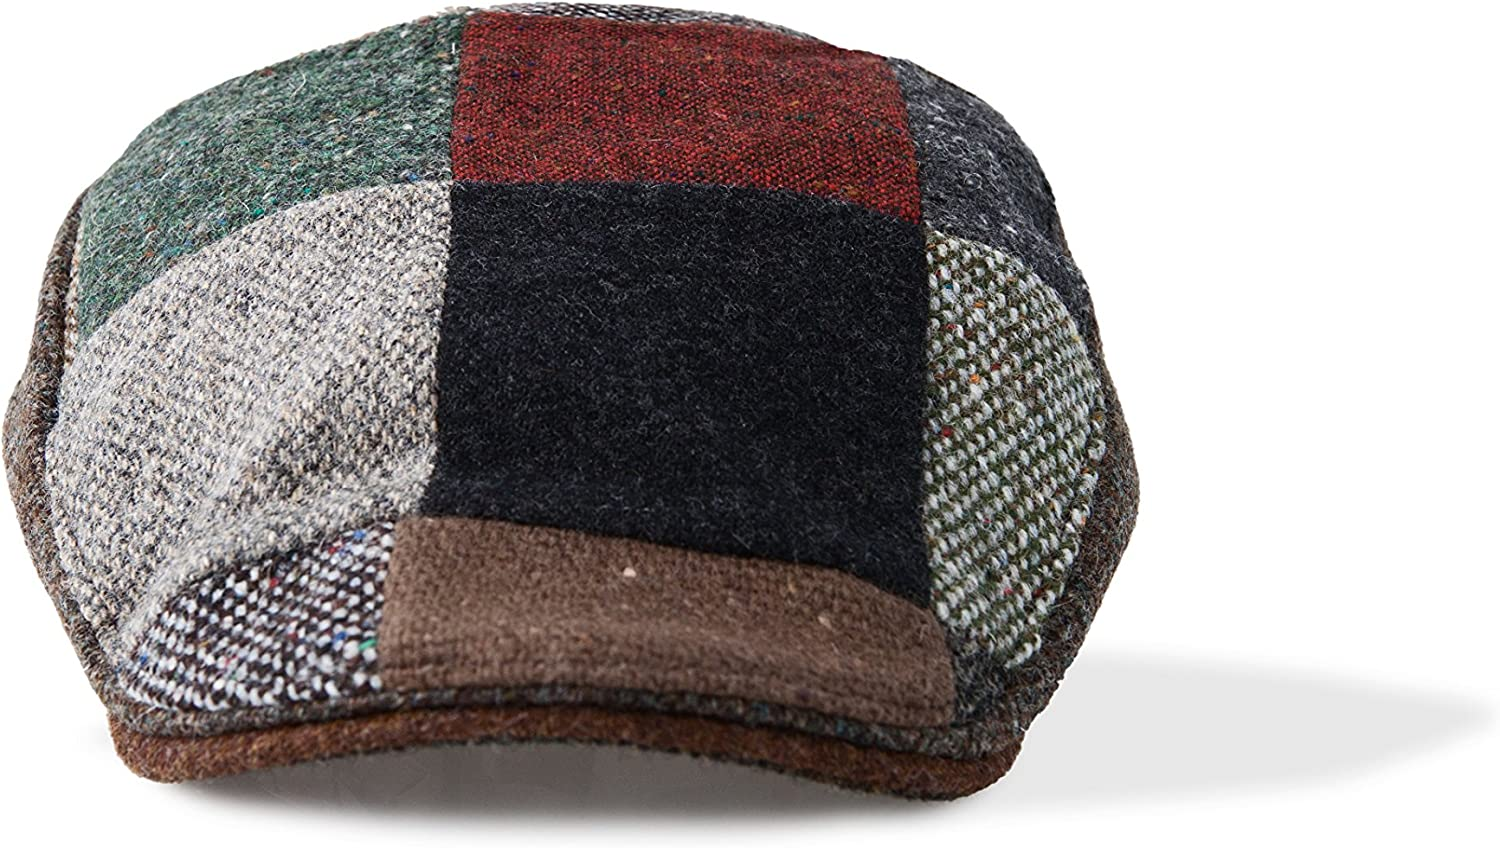 Men's Irish Flat Cheap sale Cap Don't miss the campaign Touring Wool Irelan Hat Handmade Donegal in